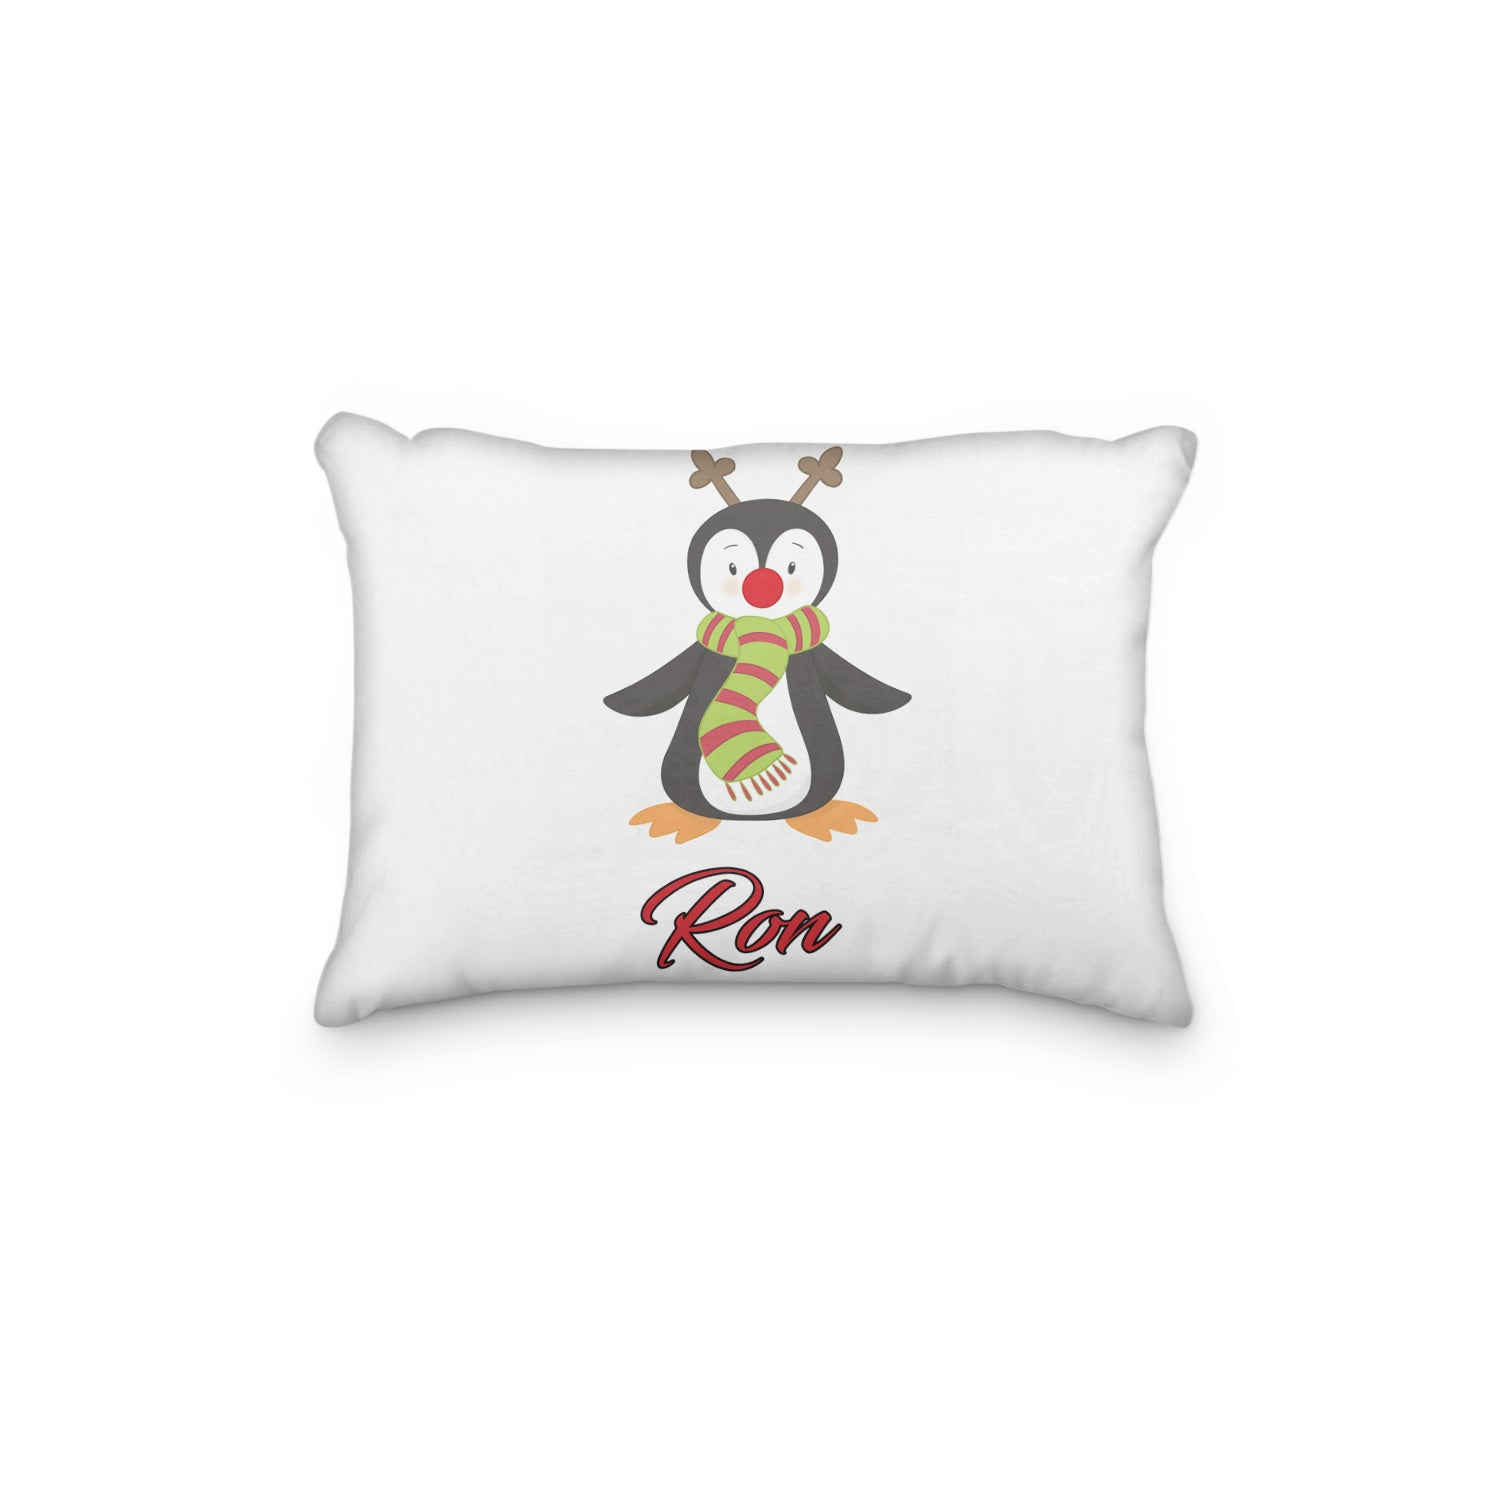 Penguin Rudolph Reindeer Personalized Pillowcase - Incandescently